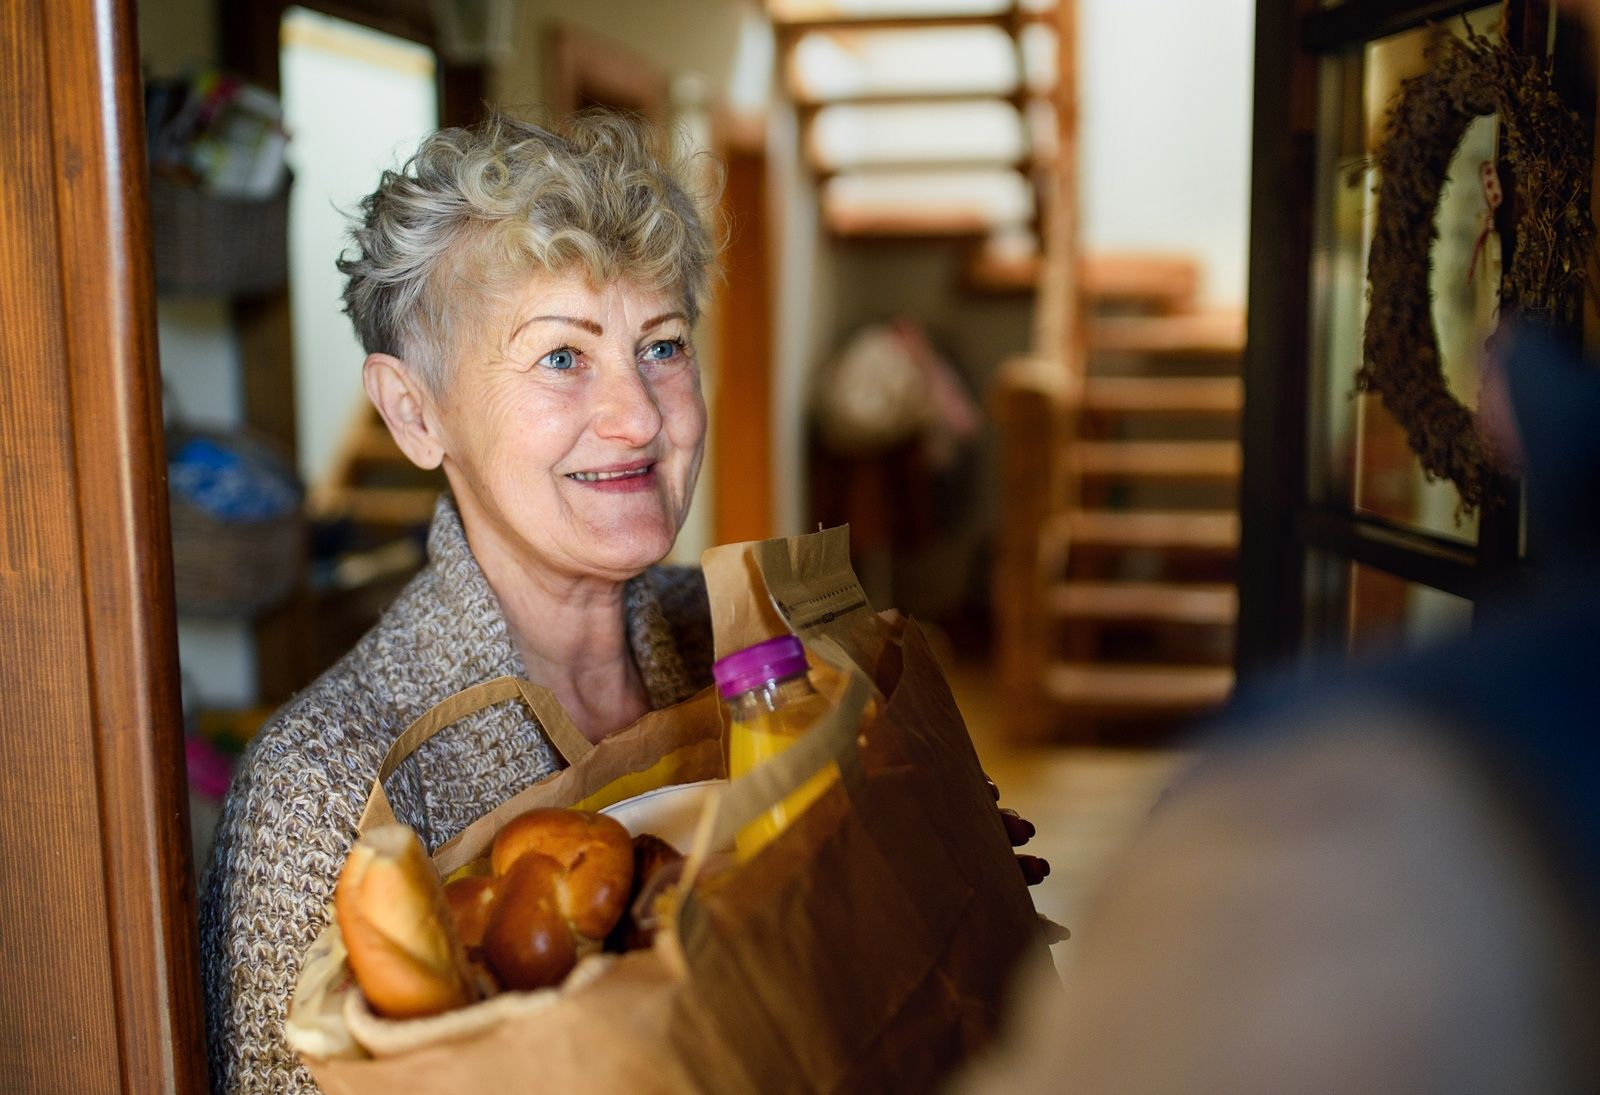 Older woman at her front door, smiling, holding groceries that were delivered